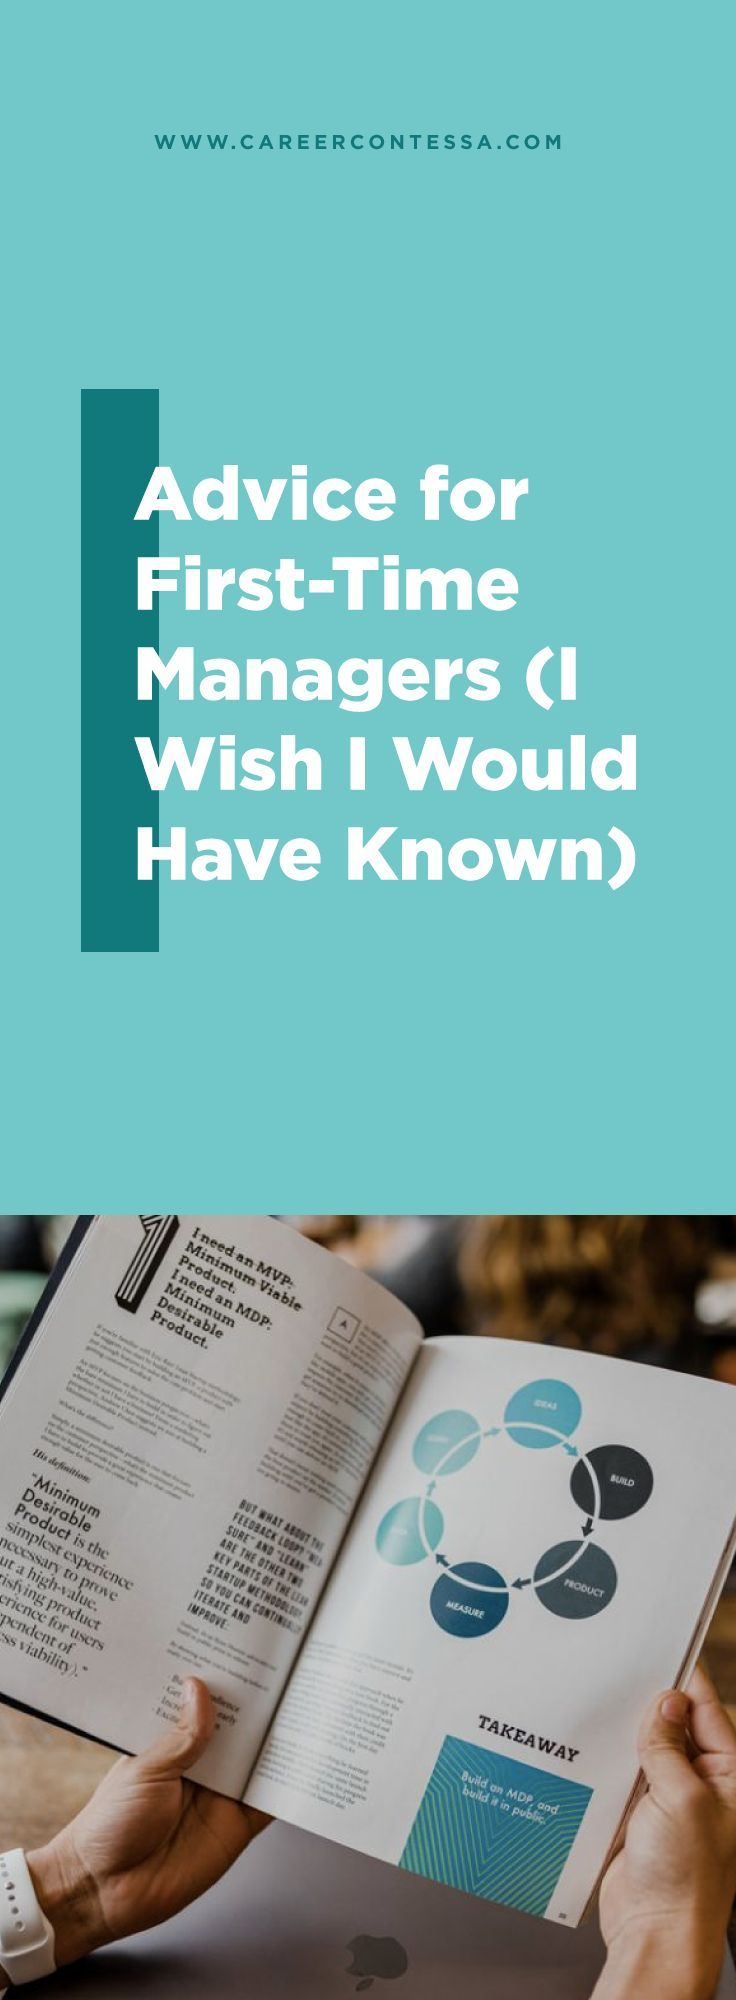 Advice for First-Time Managers (I Wish I Would Have Known)